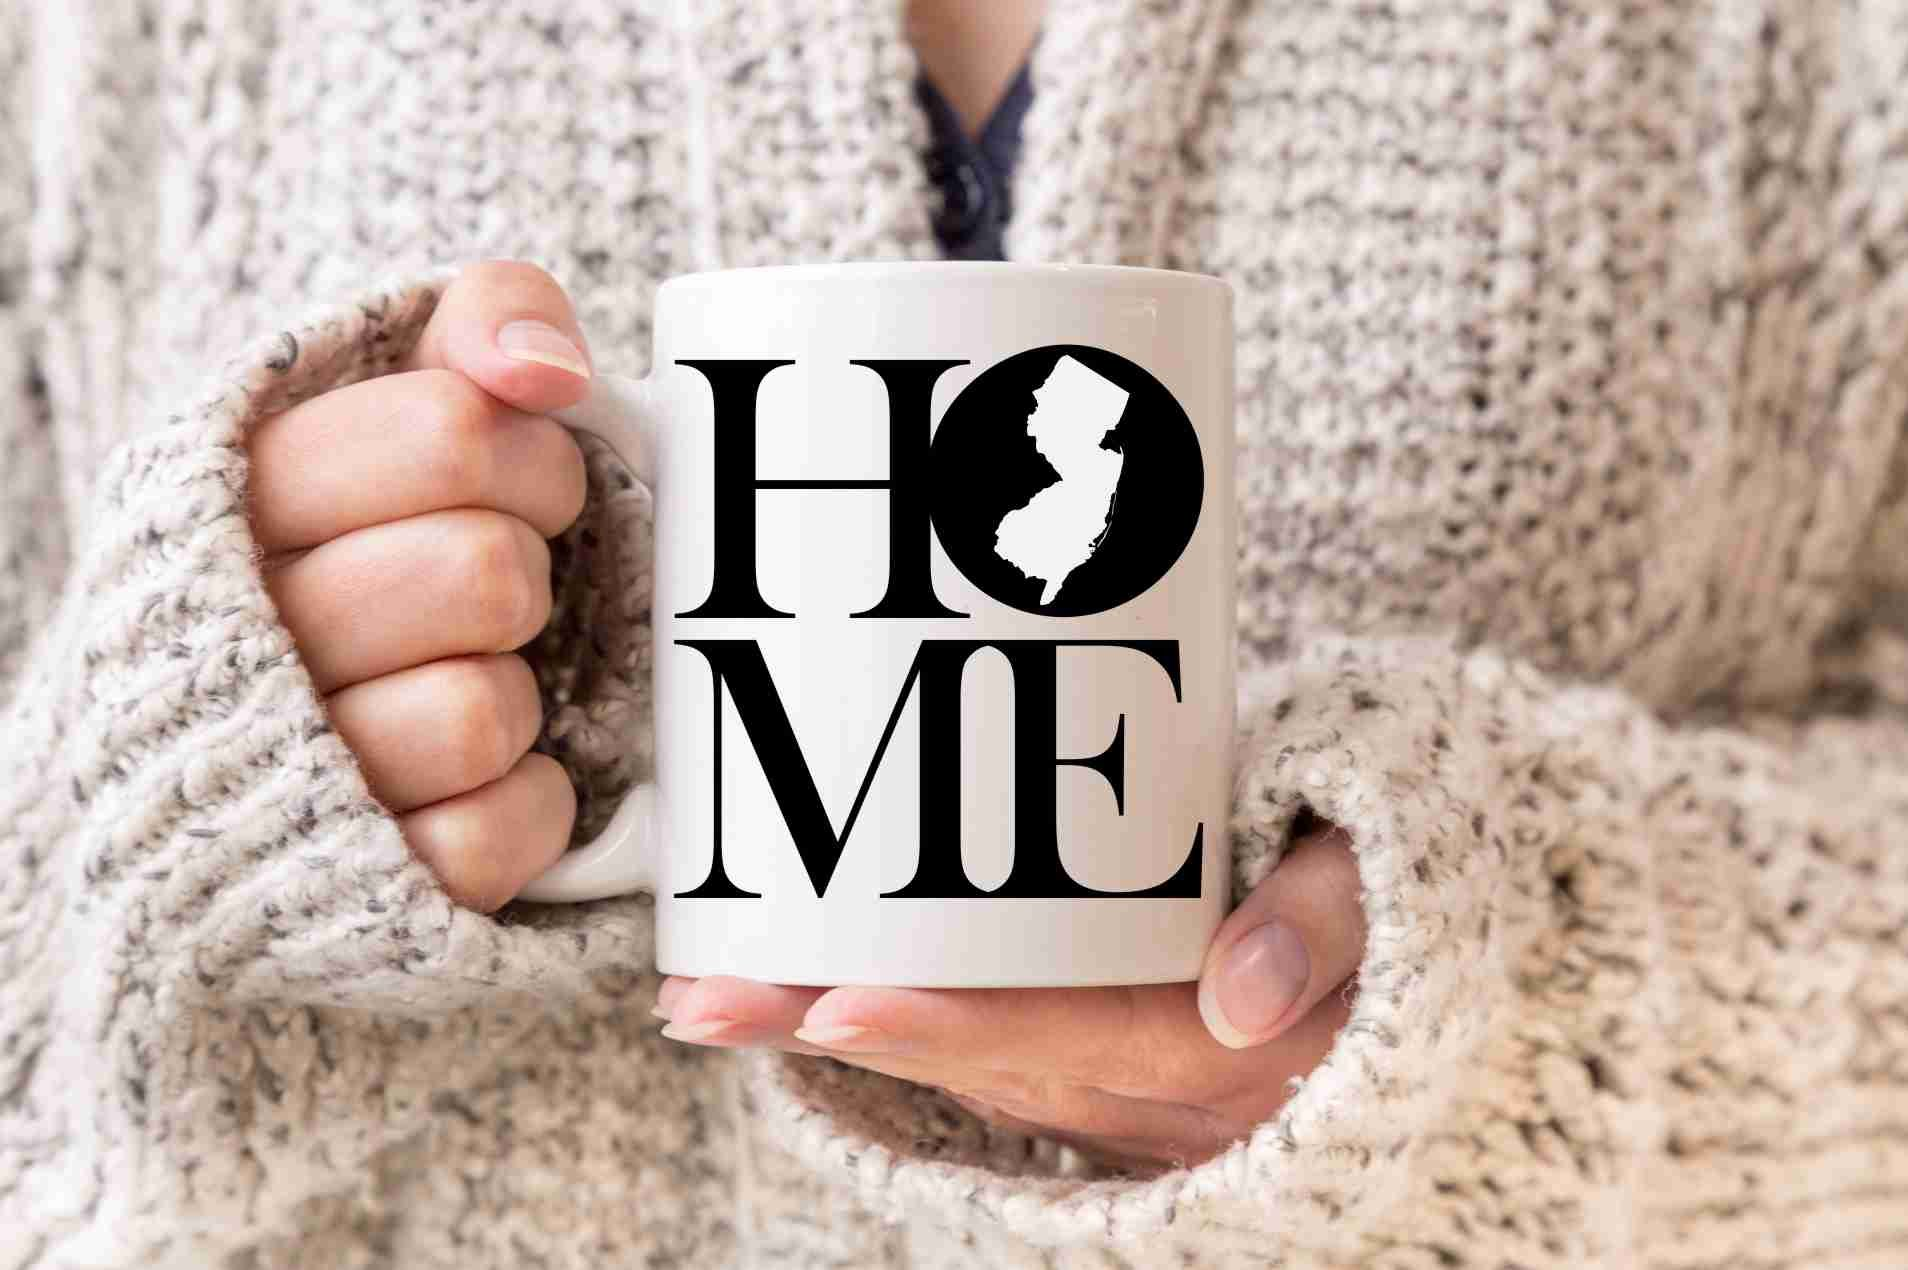 New Jersey Mug State Mug Coffee Mug Home Mug Homesick Gift Personalized Mug Custom Mug New Jersey Gift Welcome Home Gift New Home Gift